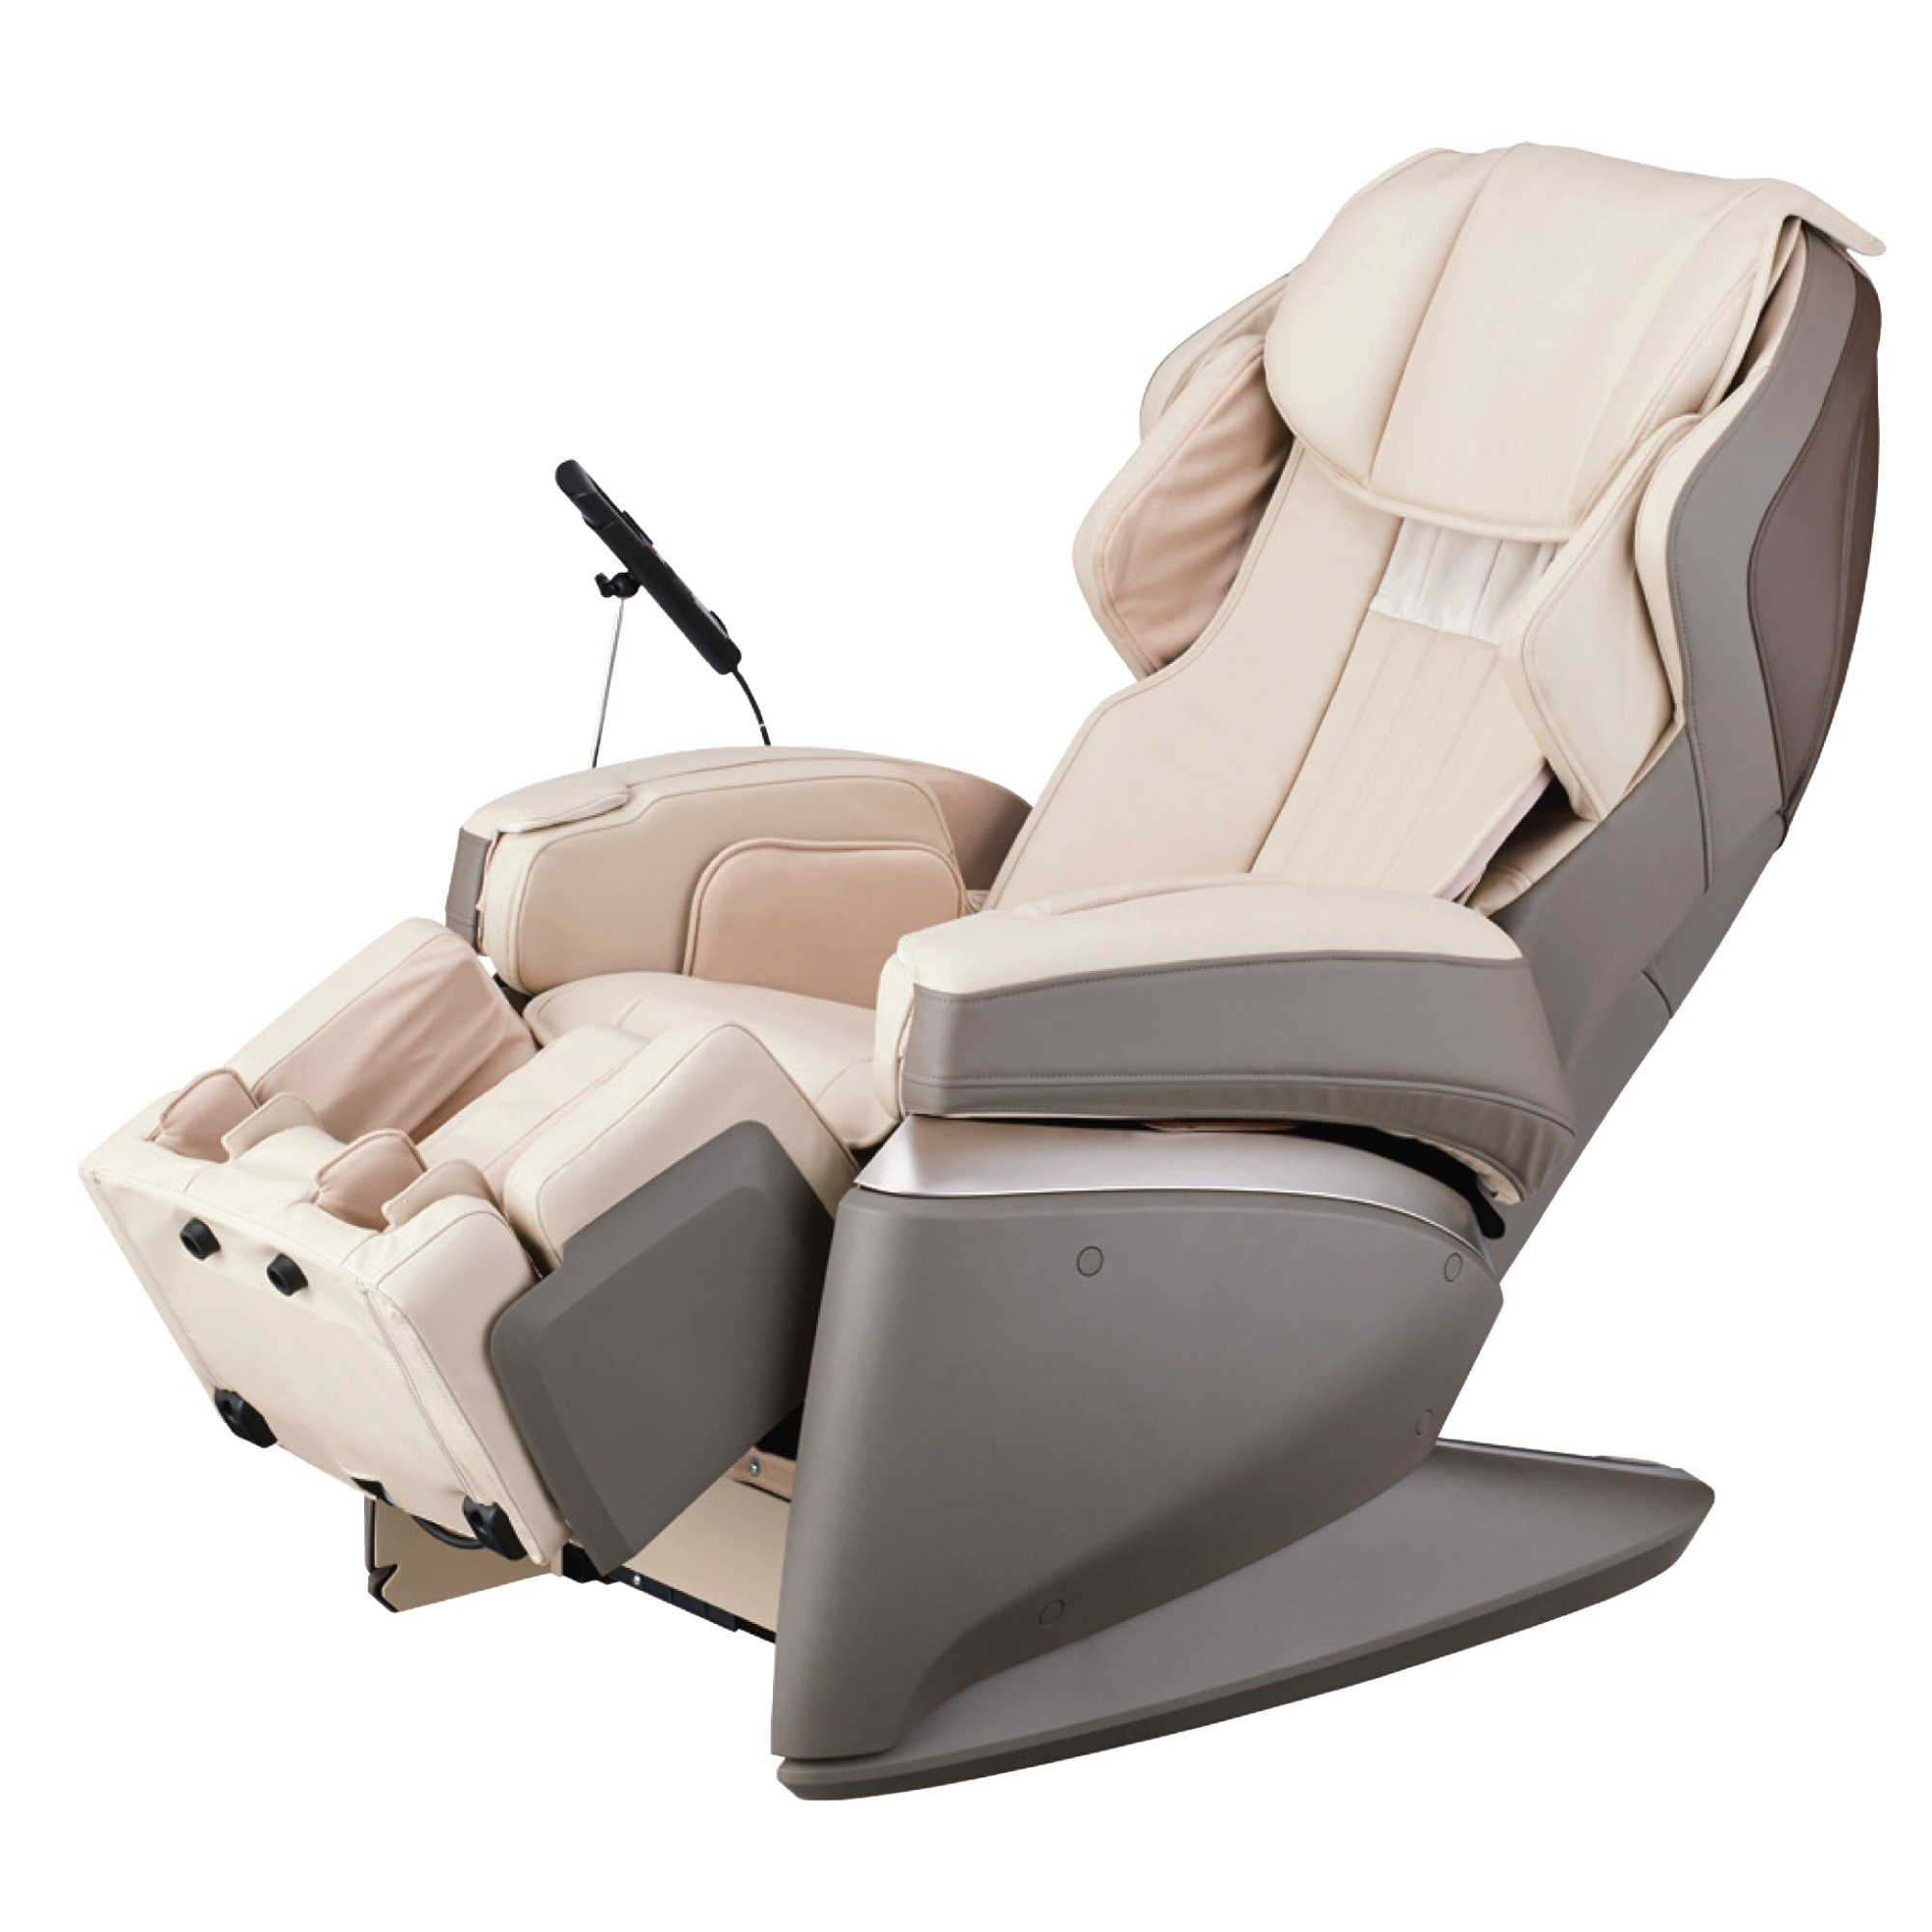 Osaki Japan 4S Premium Massage Chair - Cream - Front Angle View